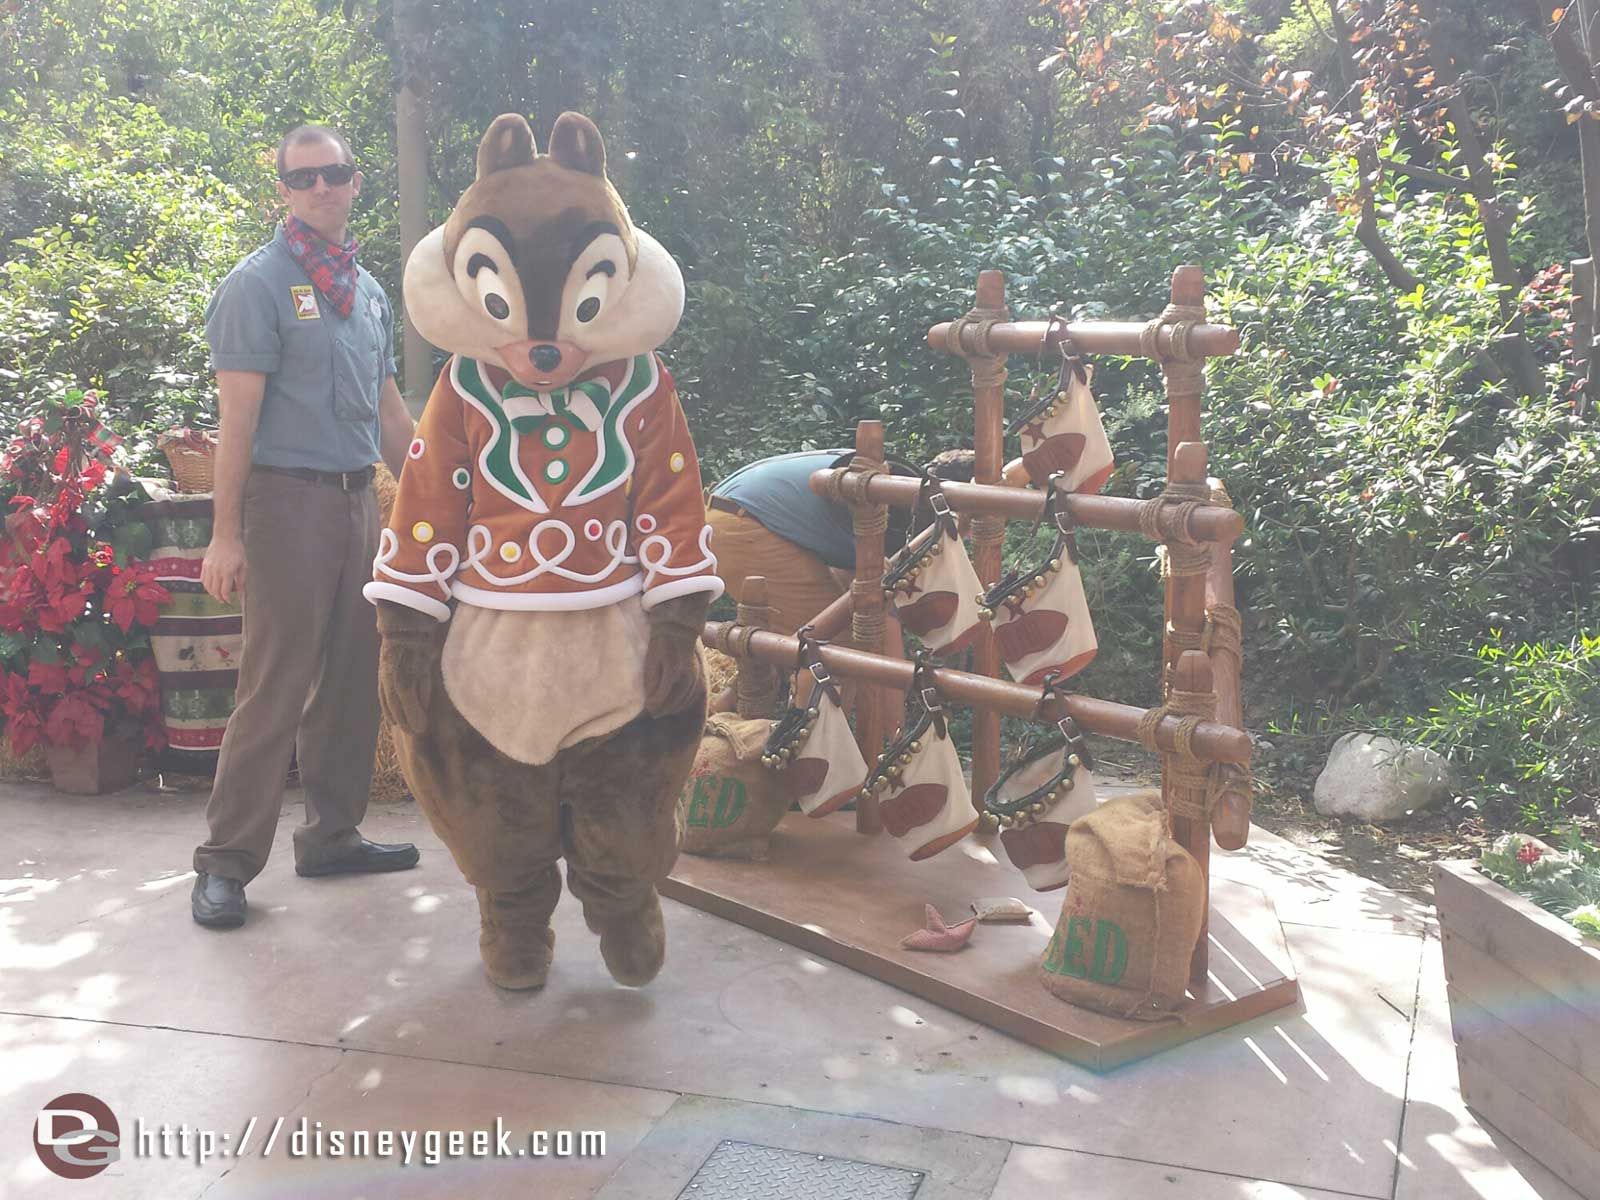 Chip was trying his luck at some Reindeer Games at the Jingle Jangle Jamboree #Disneyland